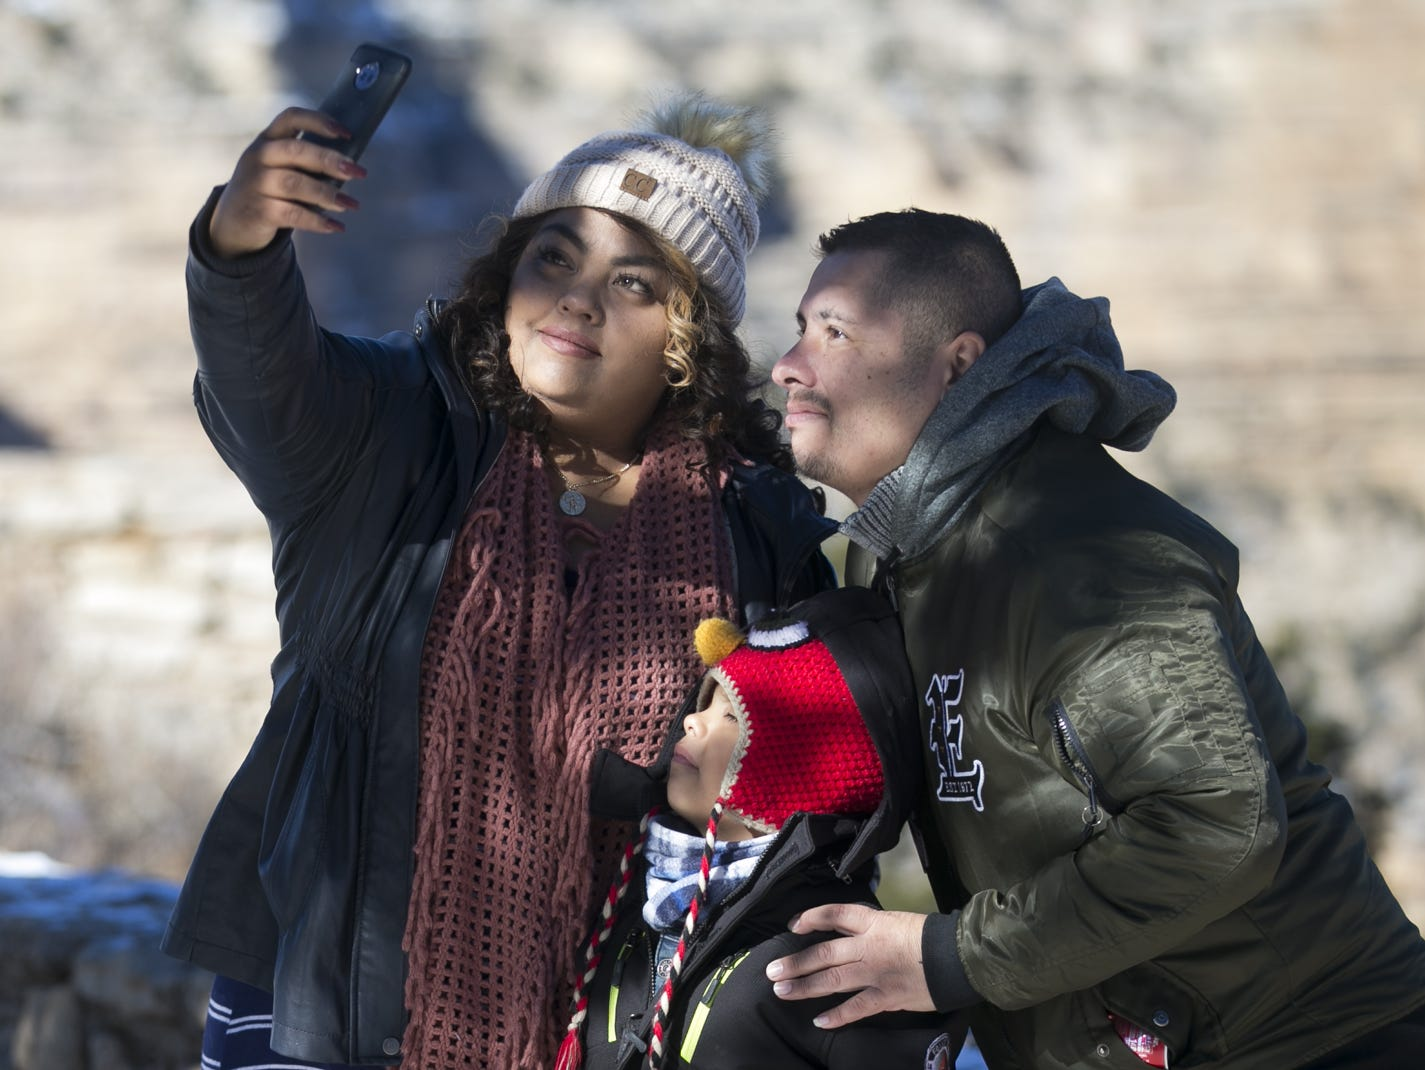 Angie Sosa (left) poses for a photo with Christian Alvarez (right) and 6-year-old Xavier Rodriquez-Alvarez (center) at Grand Canyon National Park on Jan. 4, 2019. The park was staffed at minimum capacity due to the government shutdown but retained much of its services due to an executive order issued by Arizona Gov. Doug Ducey to run the park with state funds in the event of a shutdown.